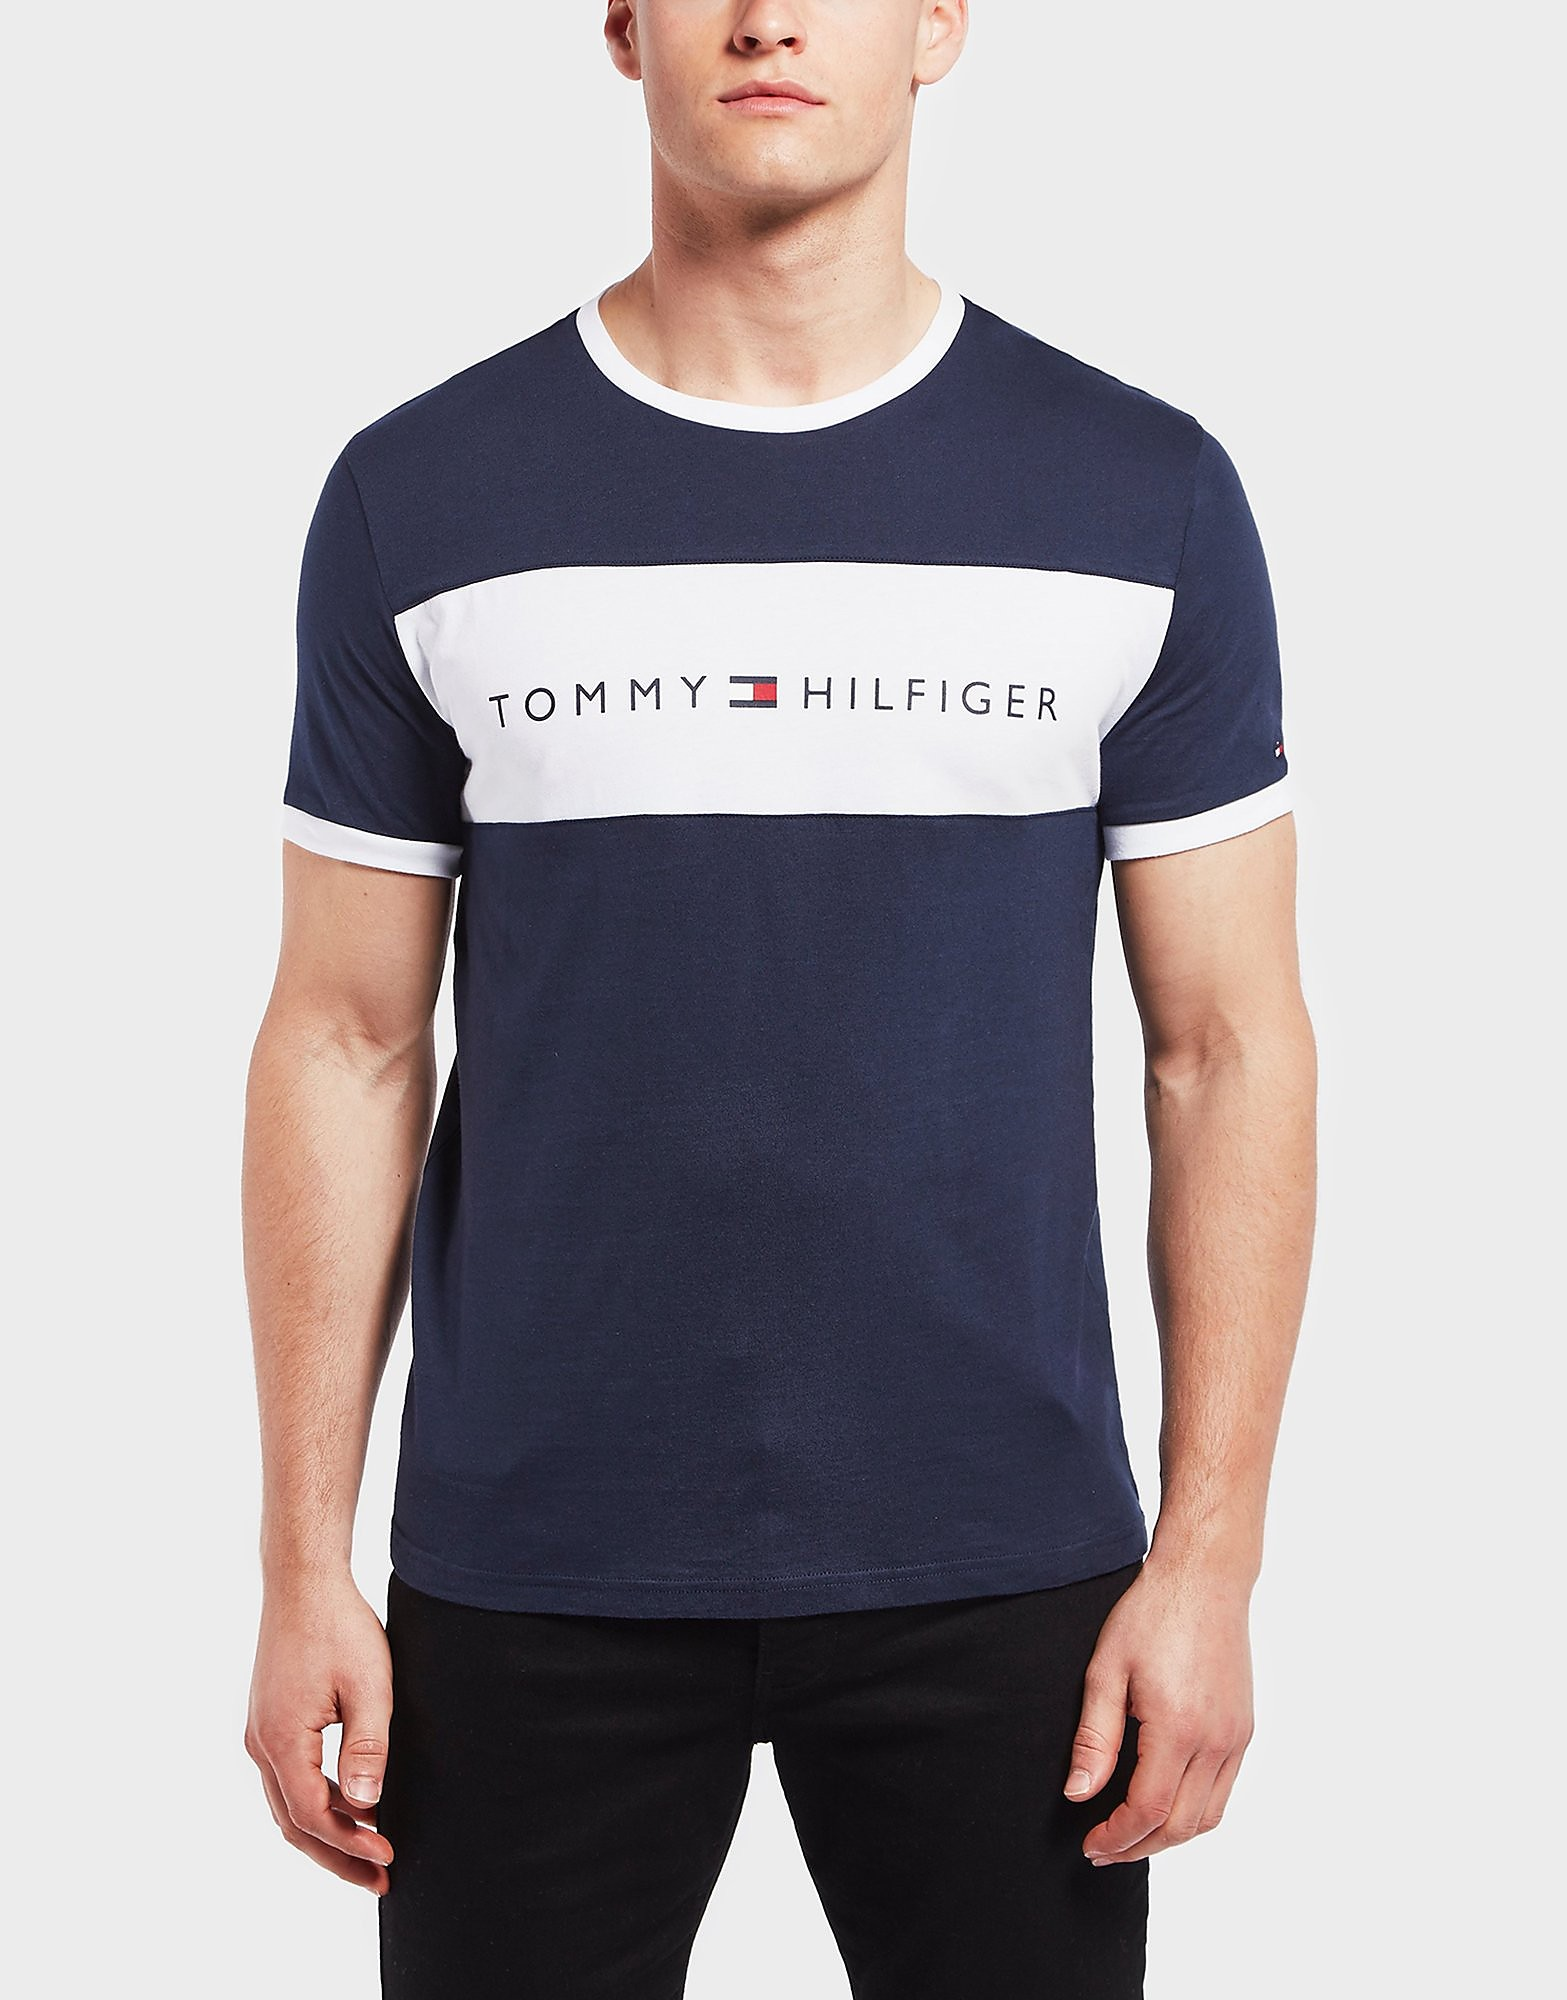 Tommy Hilfiger Colour Block Short Sleeve T-Shirt